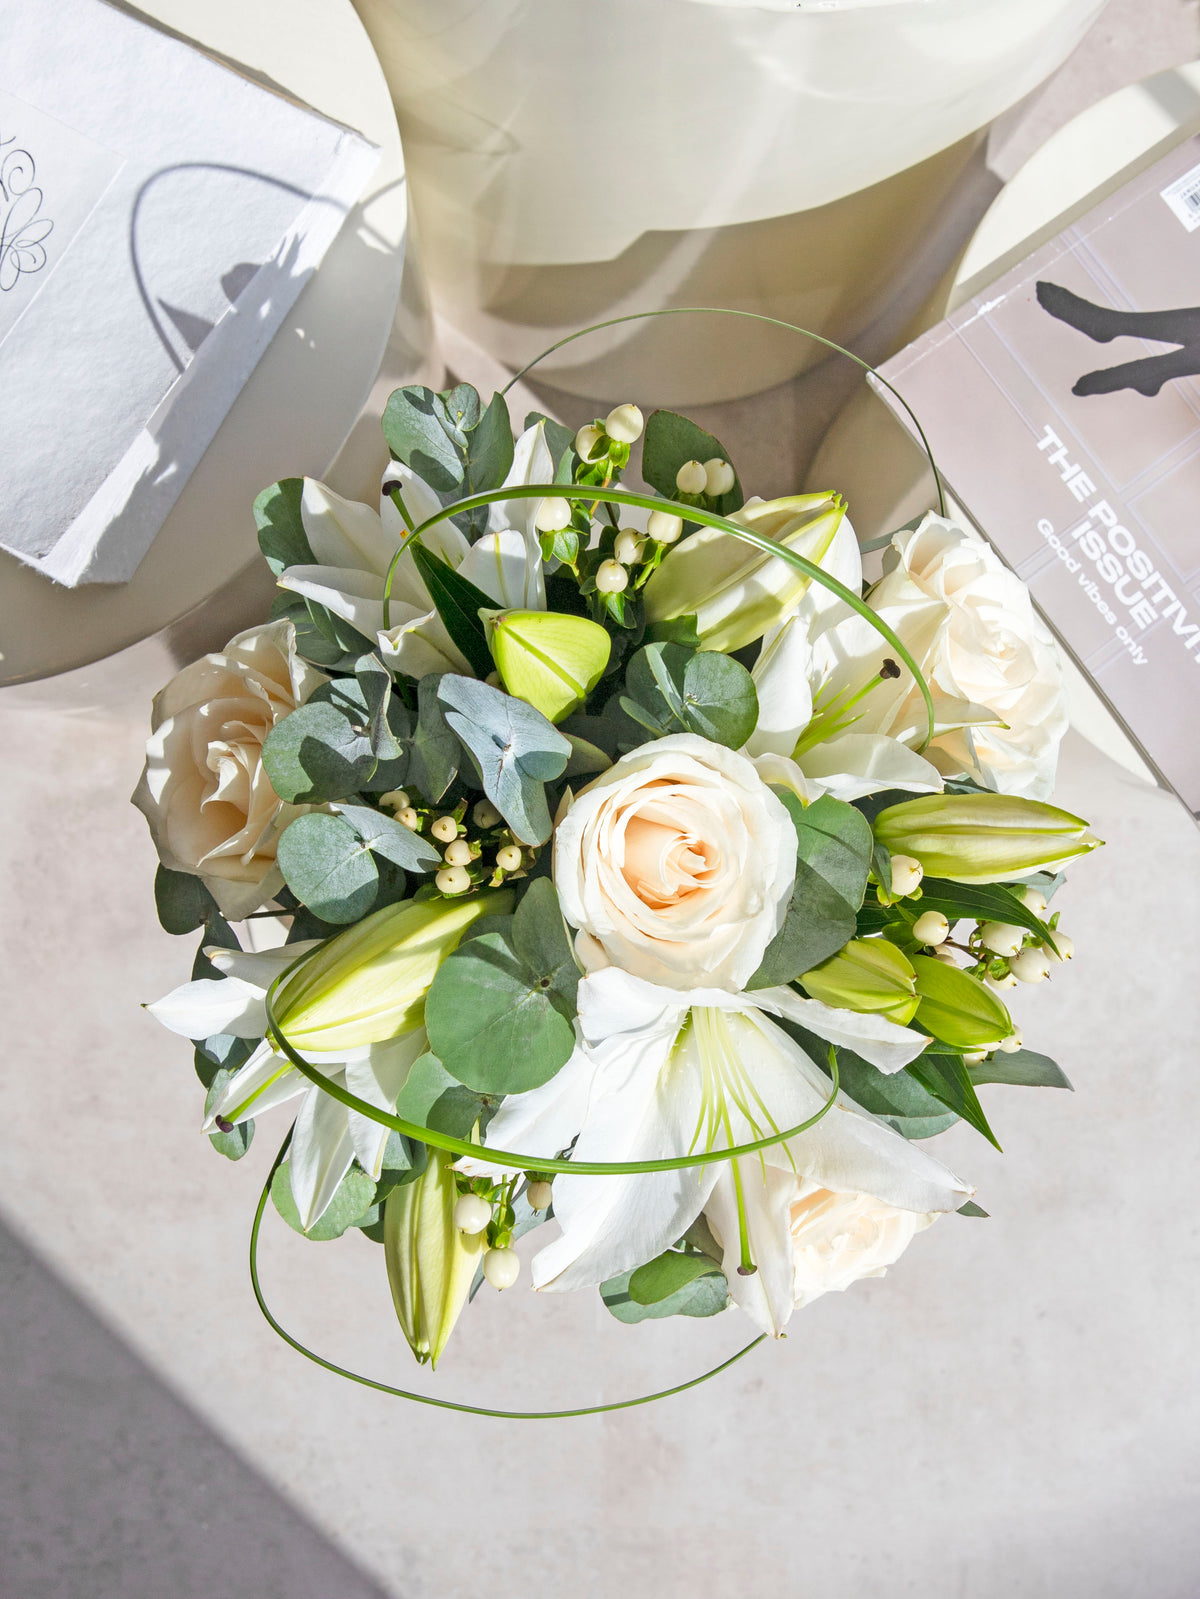 White Rose and Lily Deluxe in a luxury ceramic vase with Sparkling Win